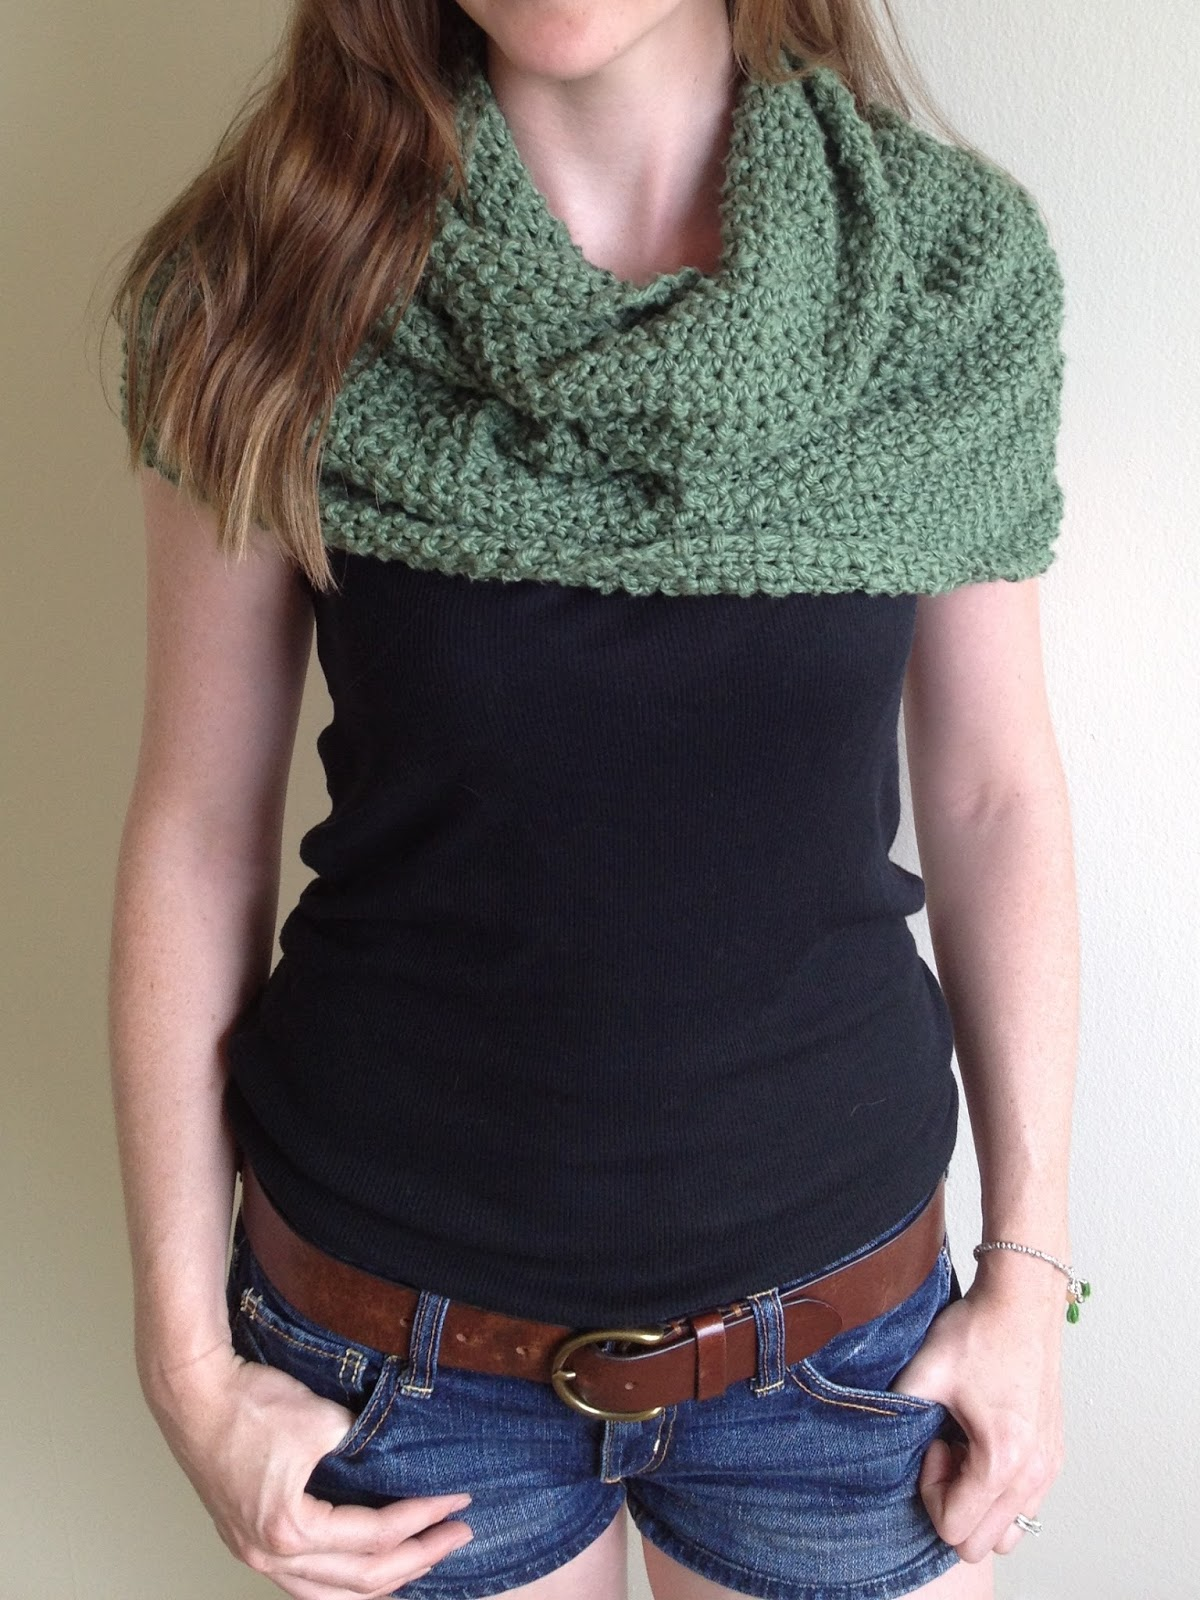 ALTERNATIVE WAY TO WEAR INFINITY SCARF